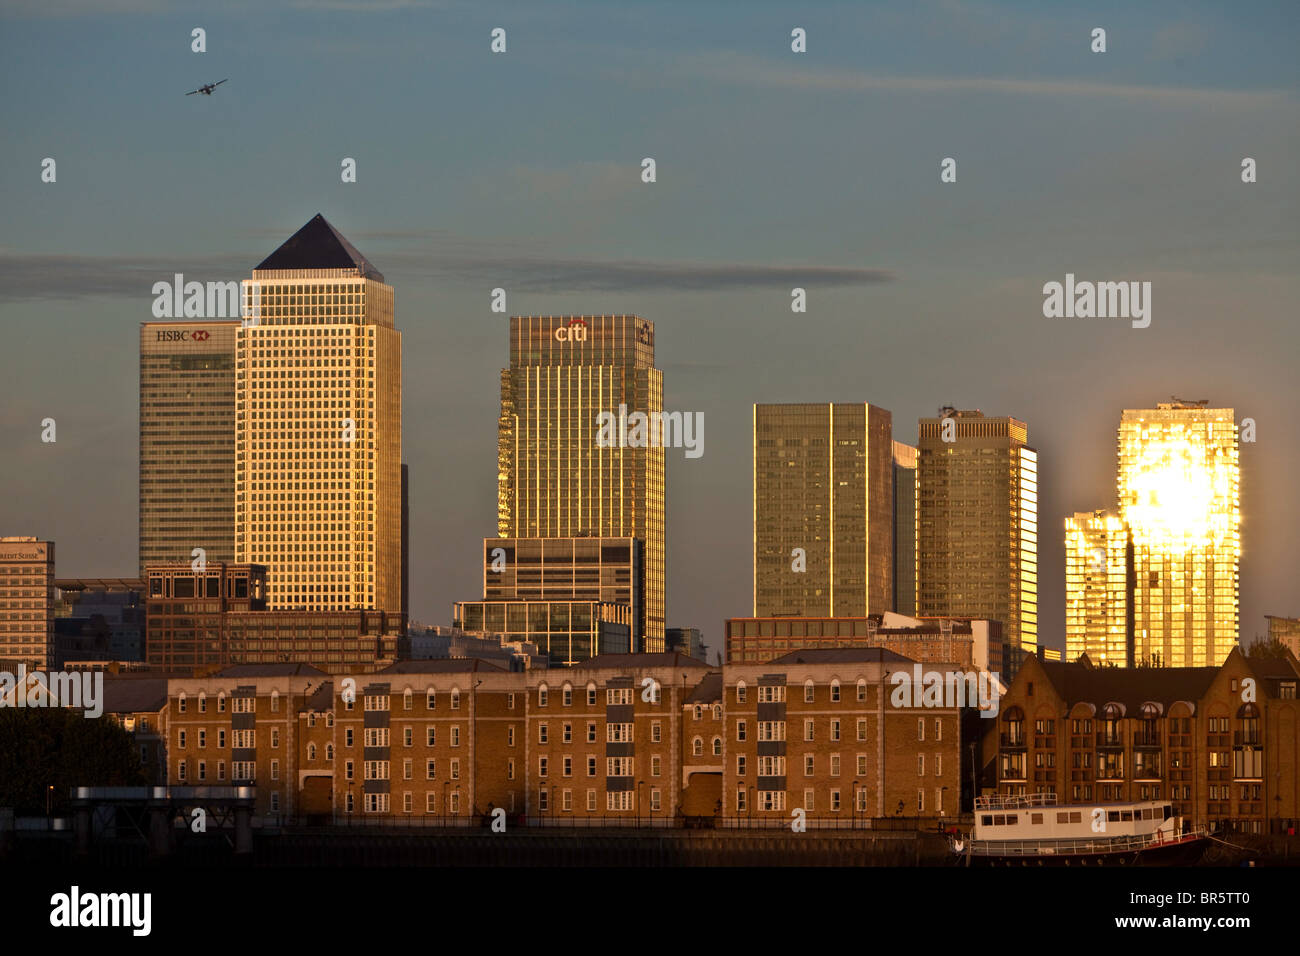 A view from across the River Thames towards, Canary Wharf and the Isle of Dogs. - Stock Image